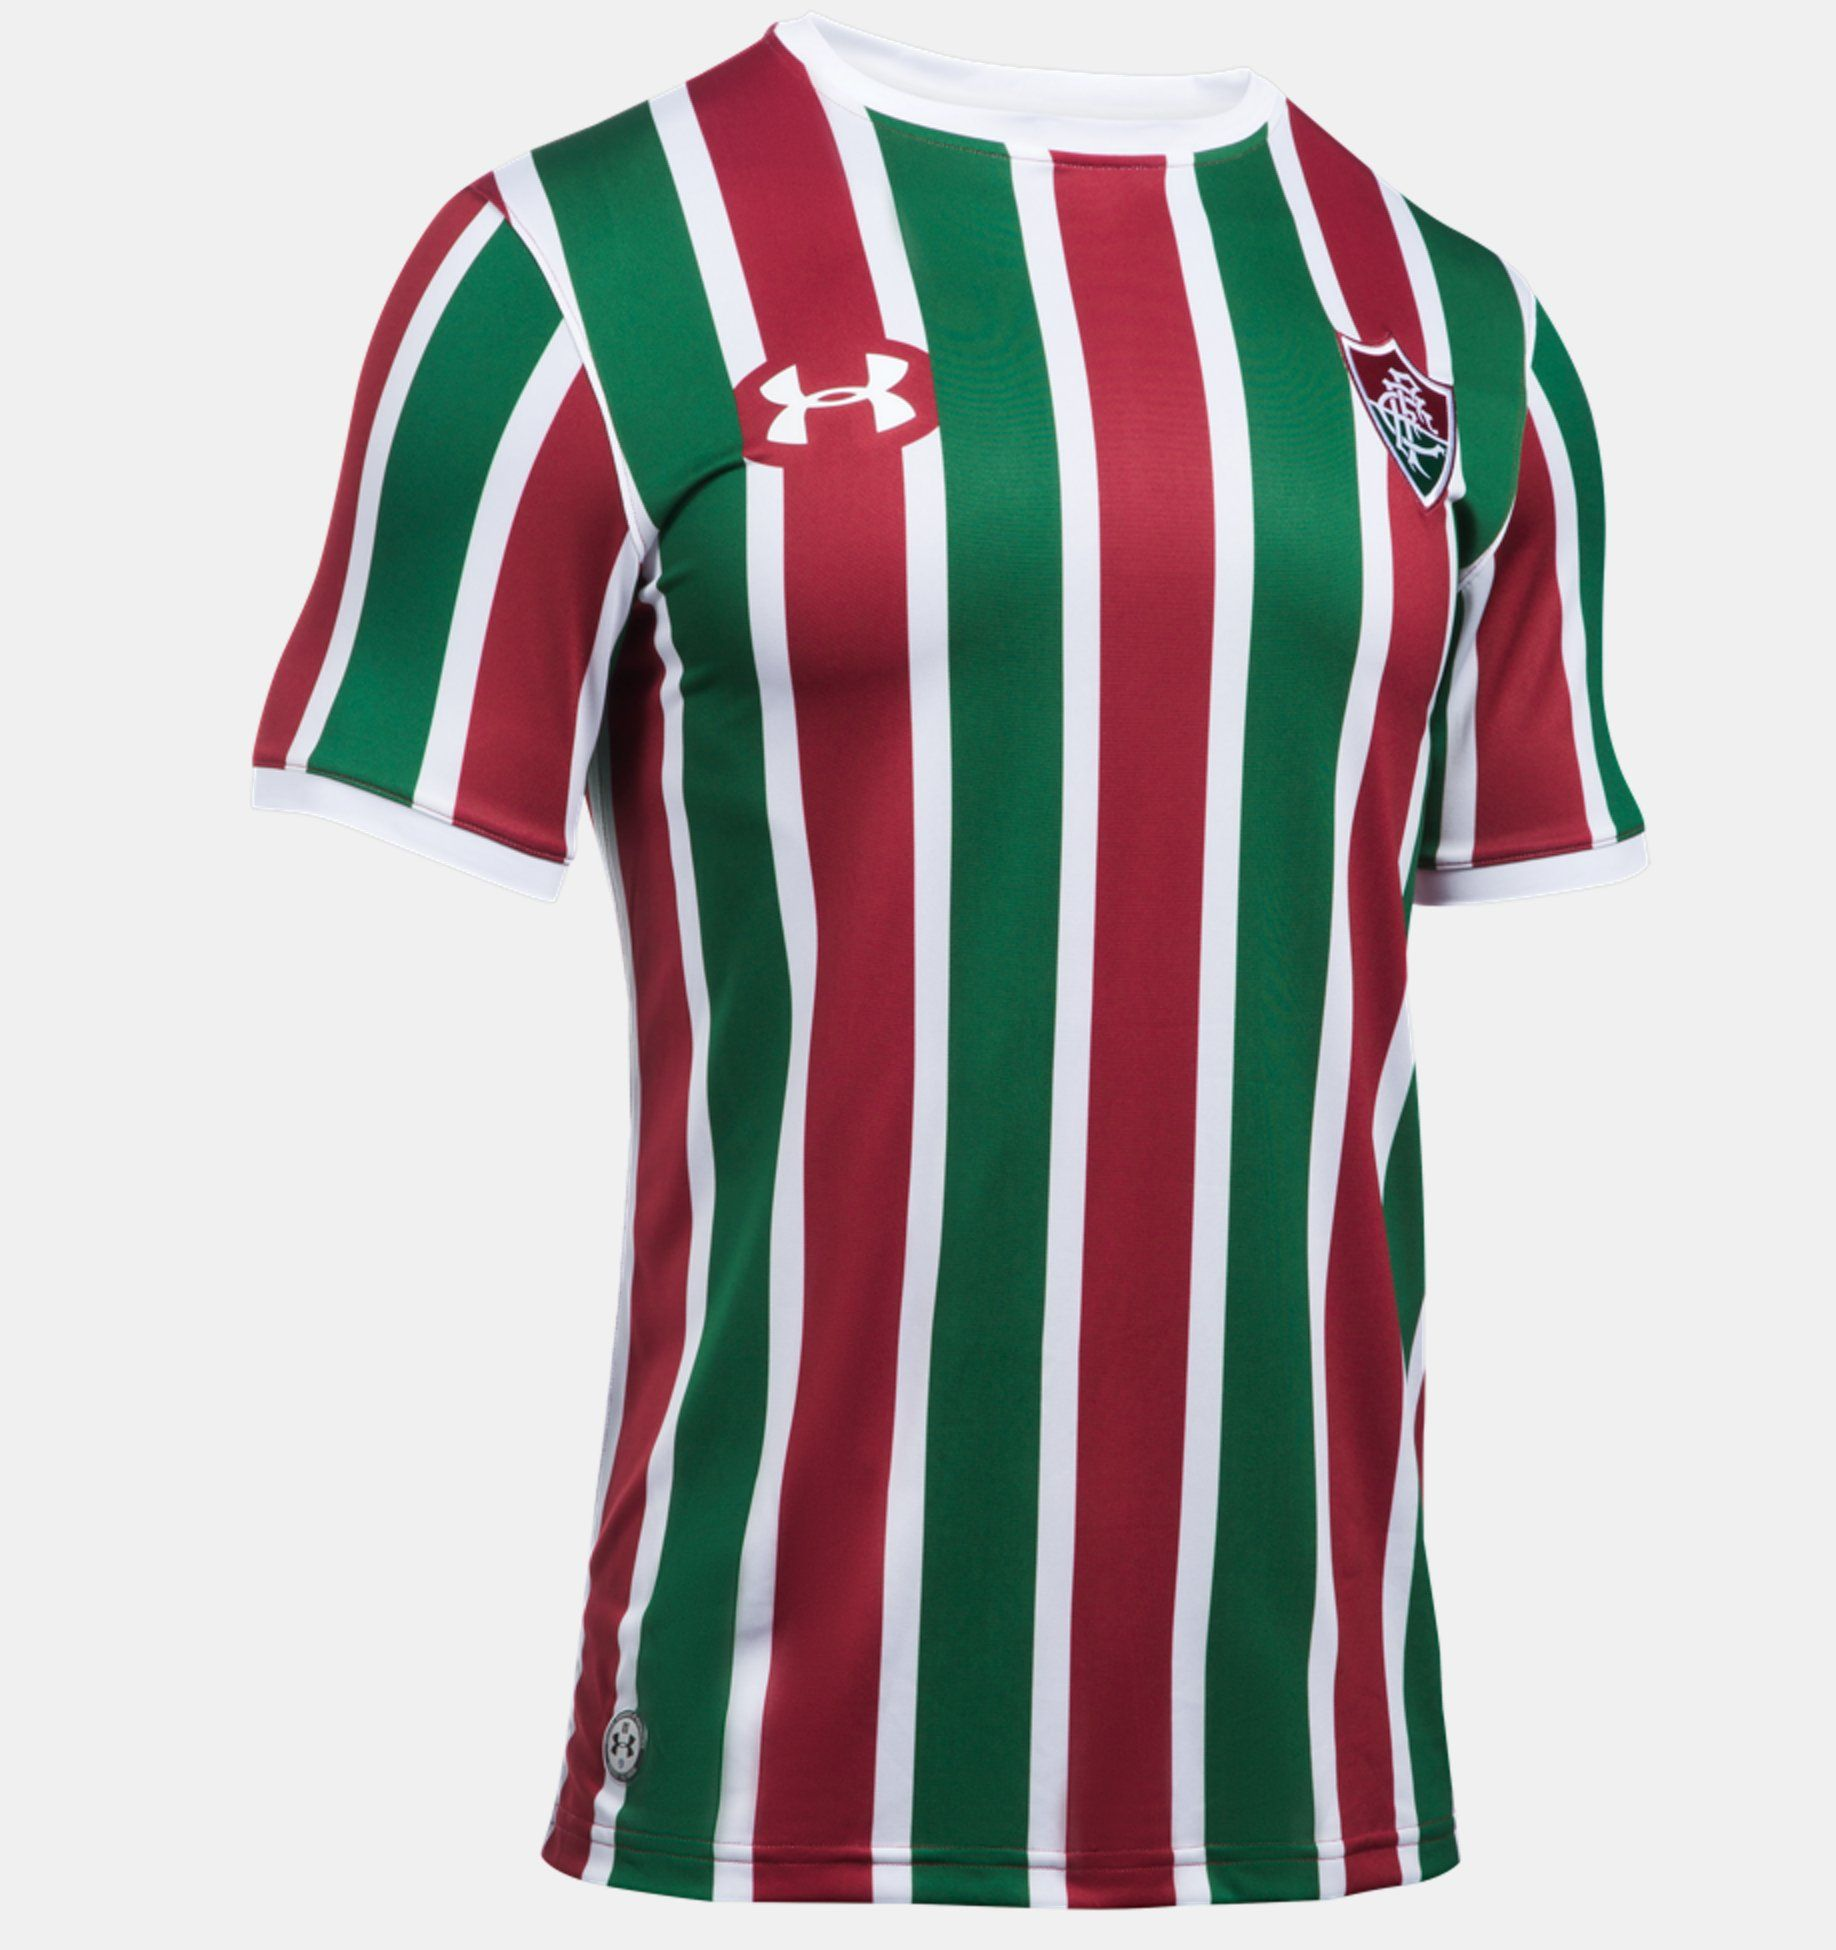 Camiseta Fluminense 1 2017 Under Armour Tricolor Torcedor